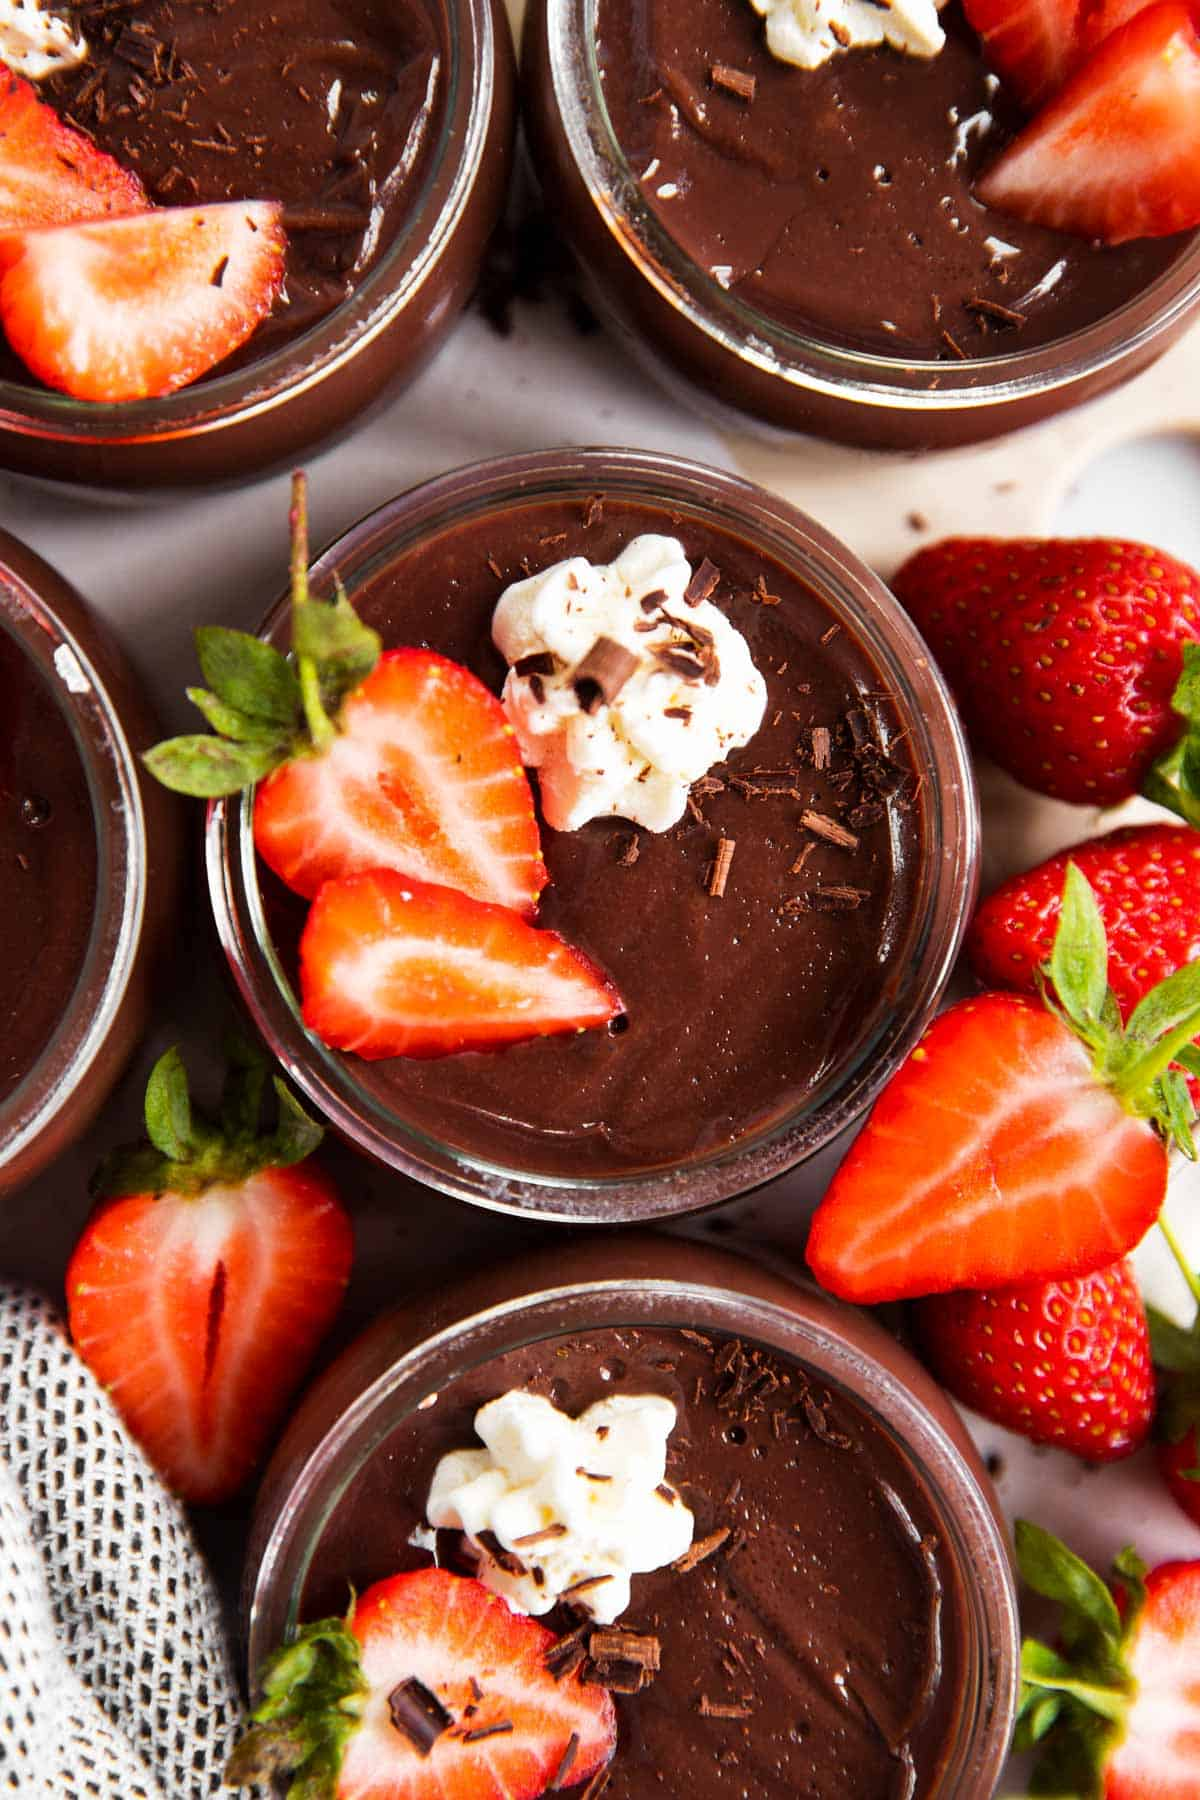 overhead view of several jars with chocolate pudding, garnished with whipped cream and strawberries